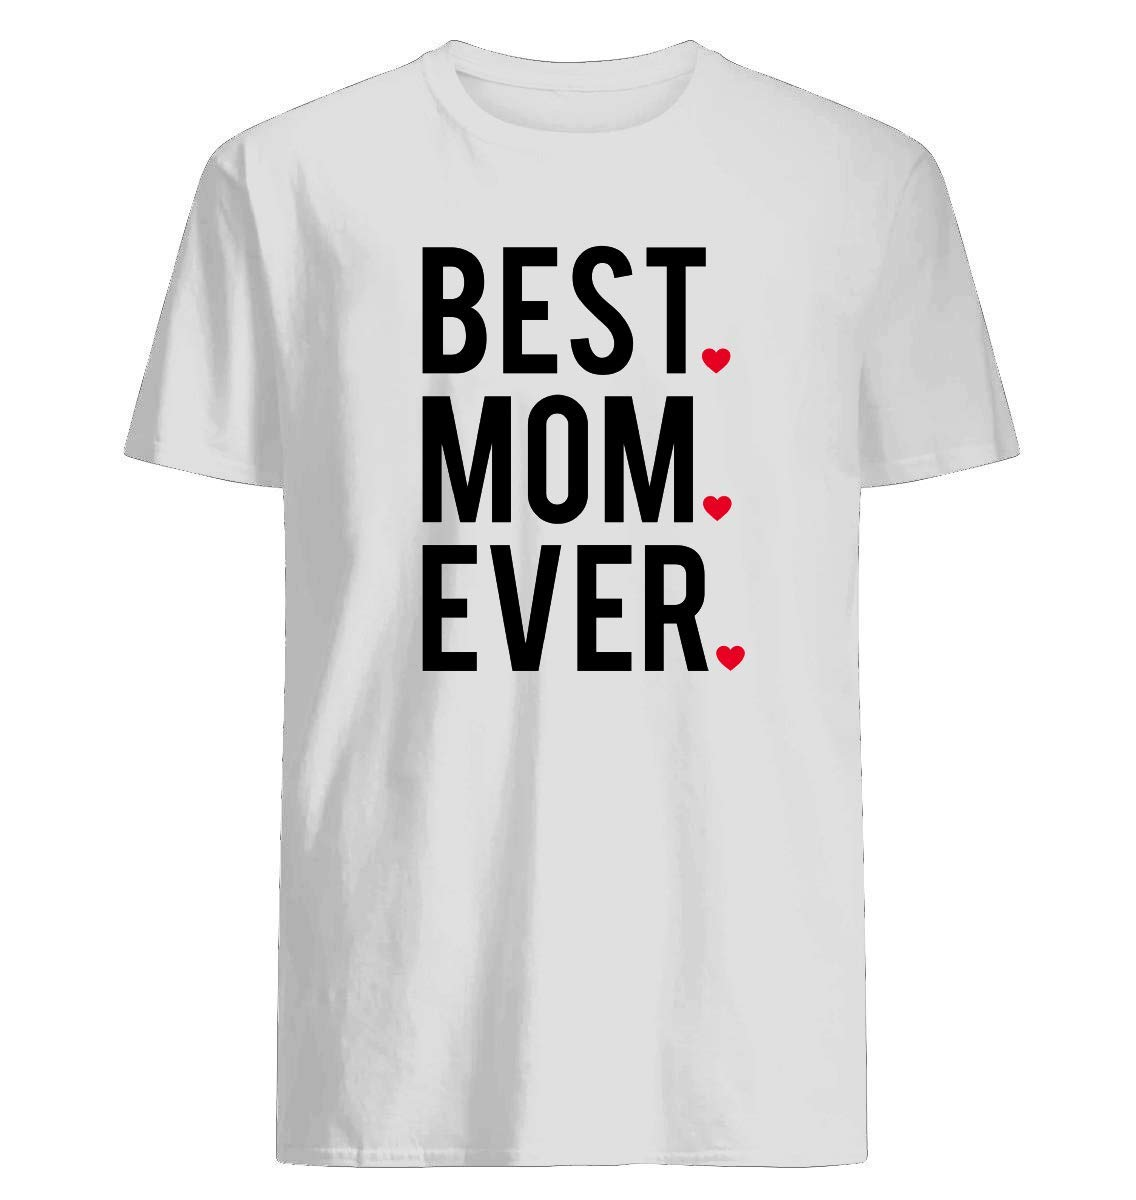 Best Mom Ever, Word Art, Text Design With Red Hearts 96 Unisex Short Sleeve Graphic Fashion T-shirt